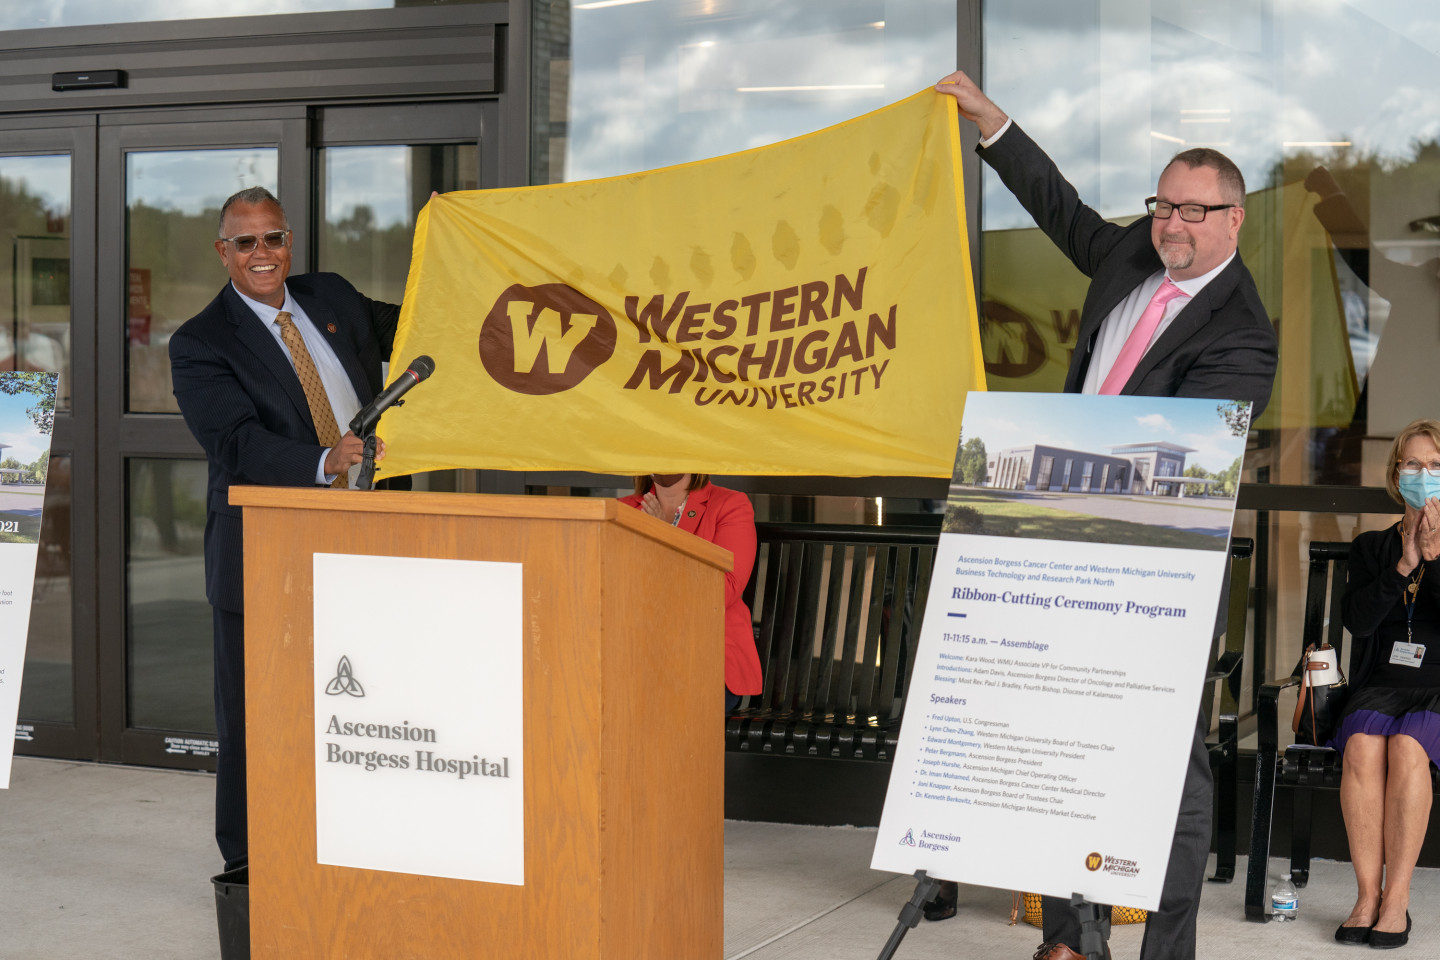 President Montgomery holds up a Western Michigan University flag with President Peter Bergmann of Ascension Borgess in front of the podium of the Ascension Borgess Cancer Center.